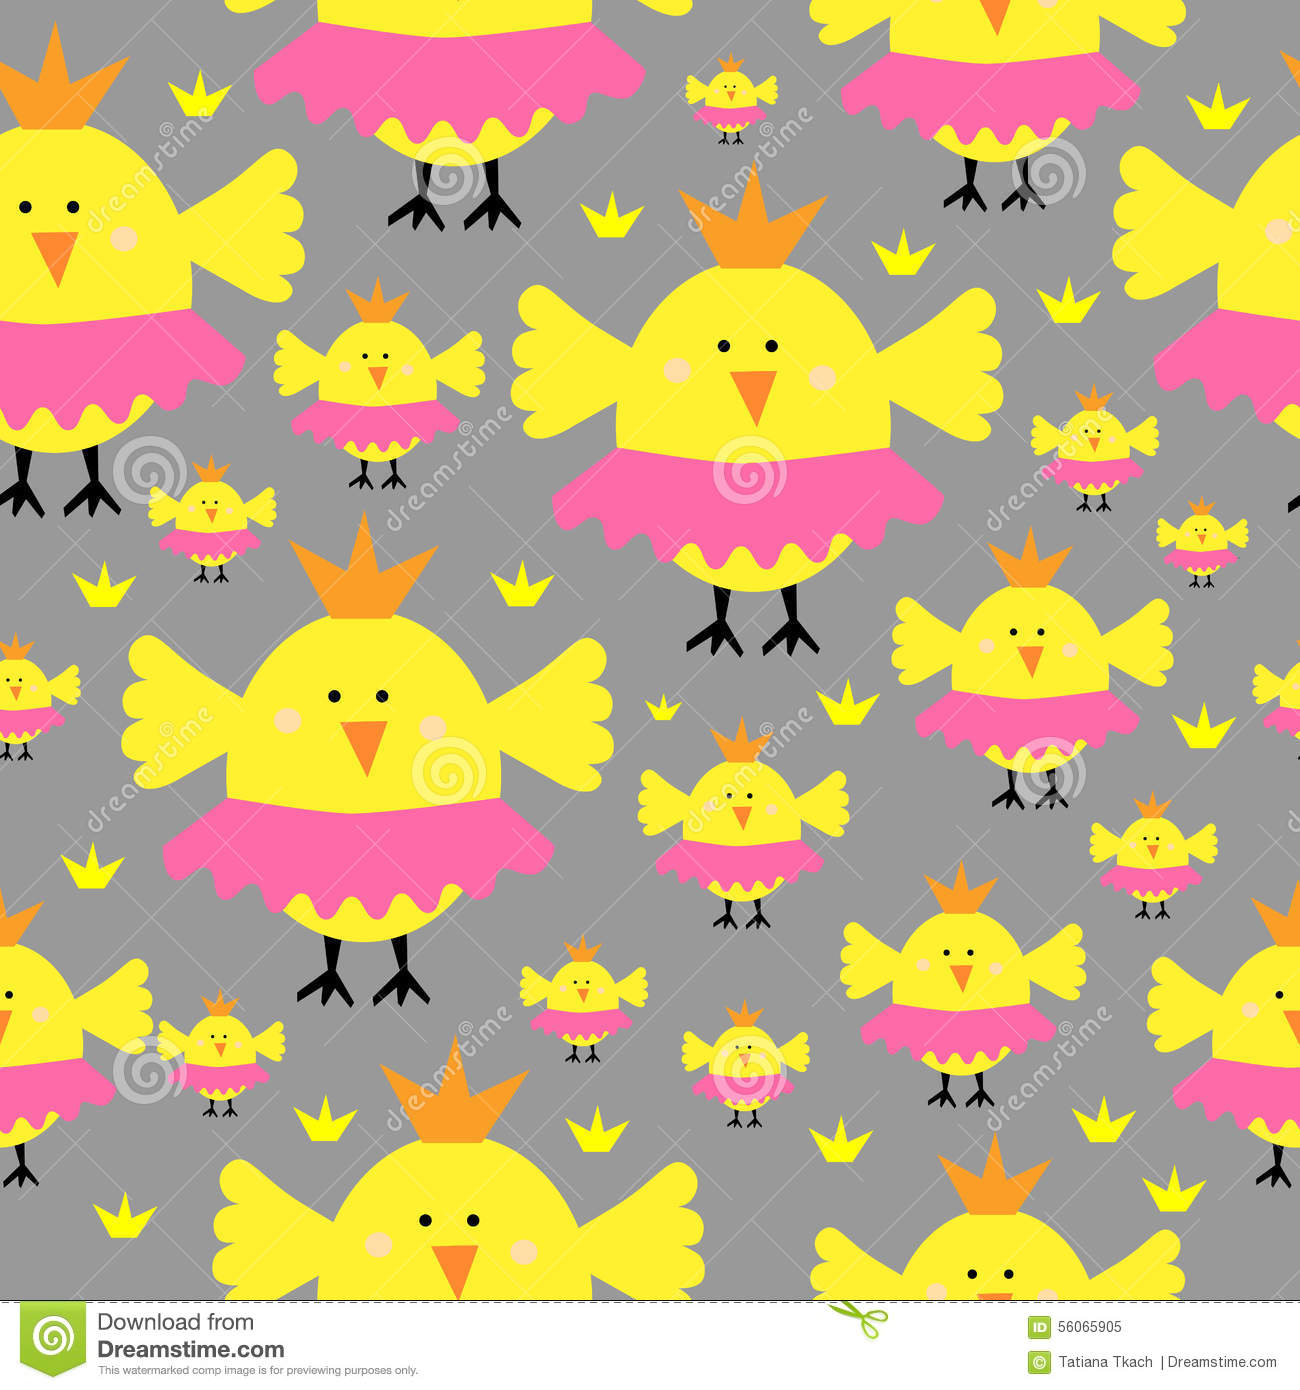 Princess chick chicken seamless pattern stock vector for Children s character fabric